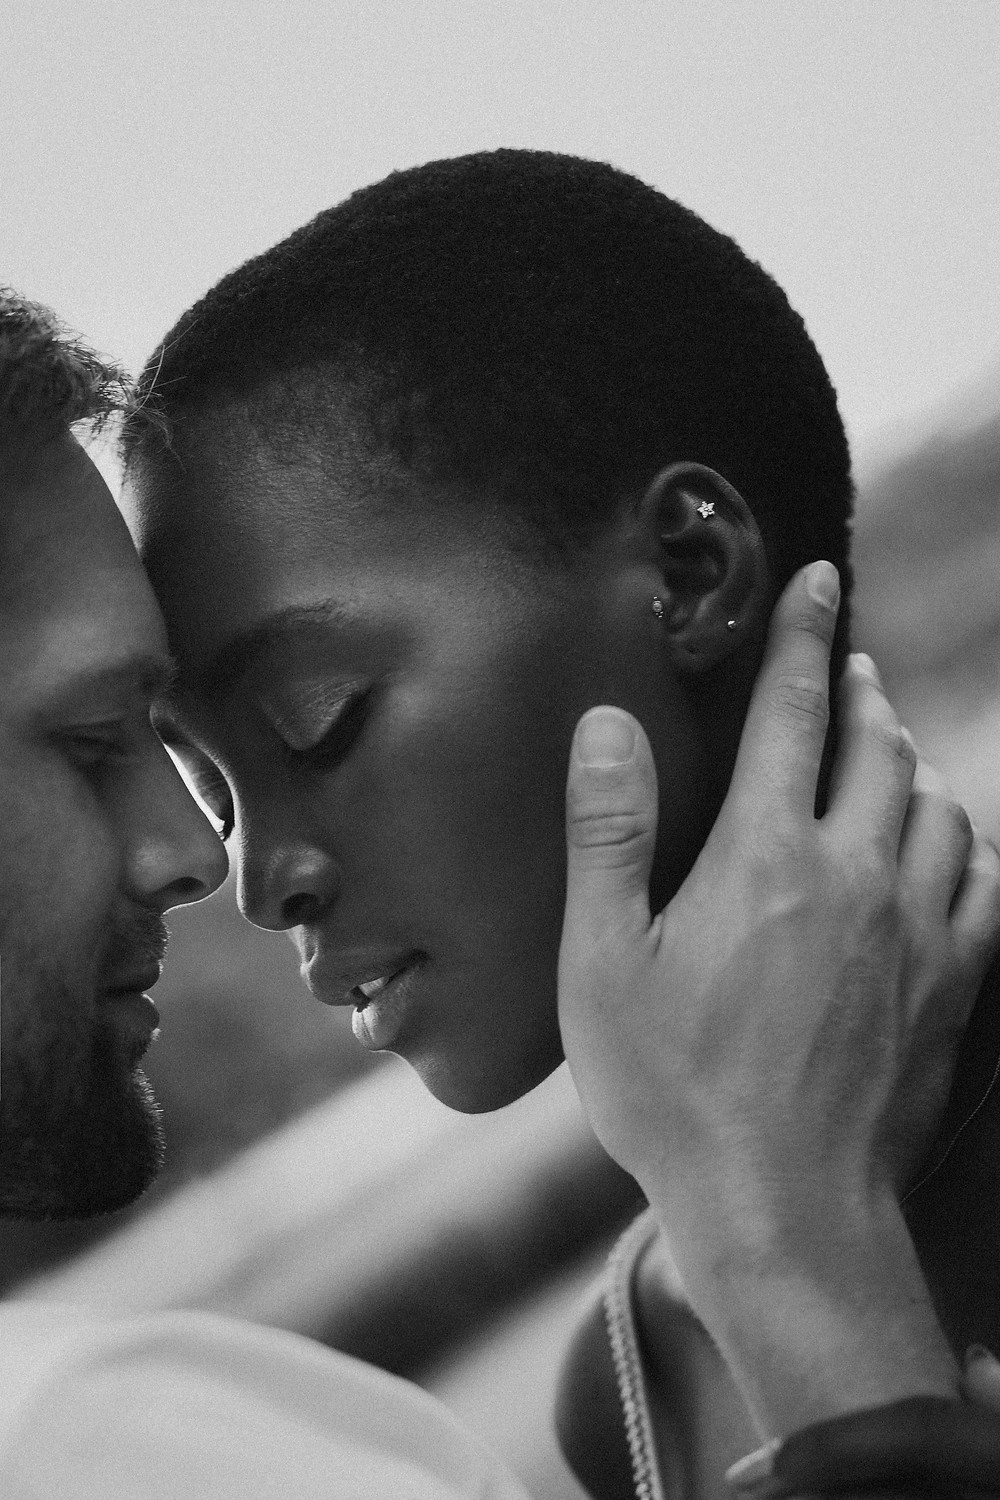 Interracial Couples Photo Black and White